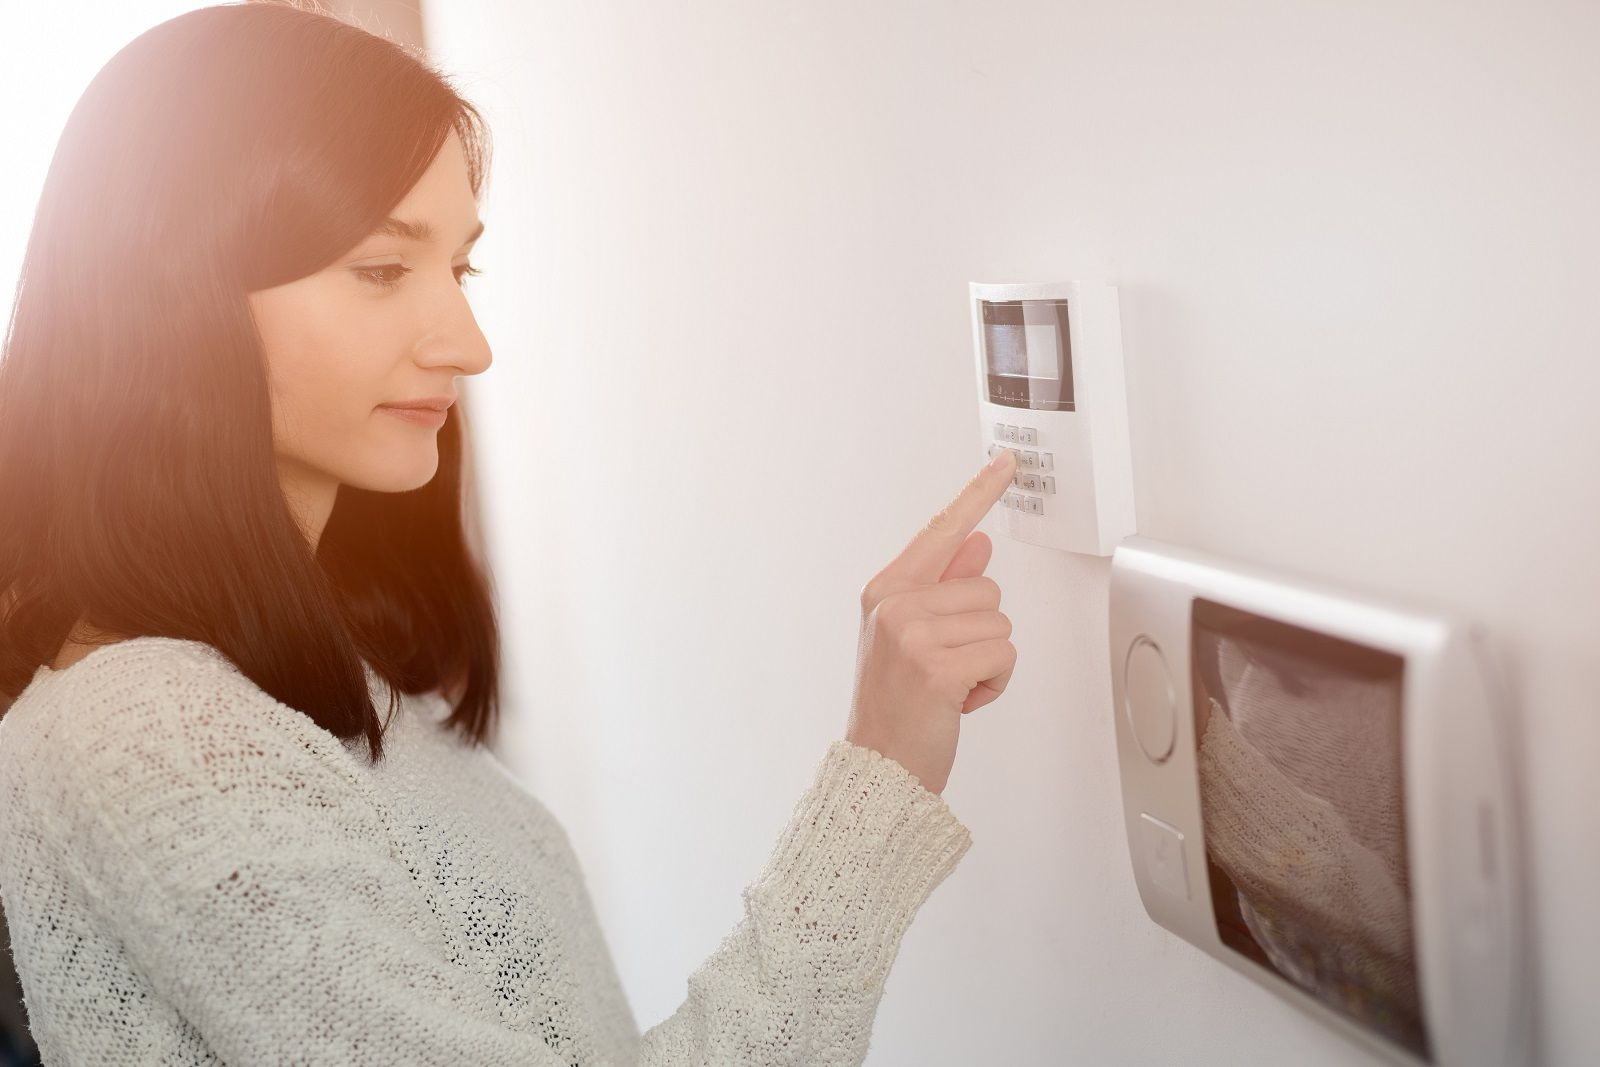 girl using security alarm